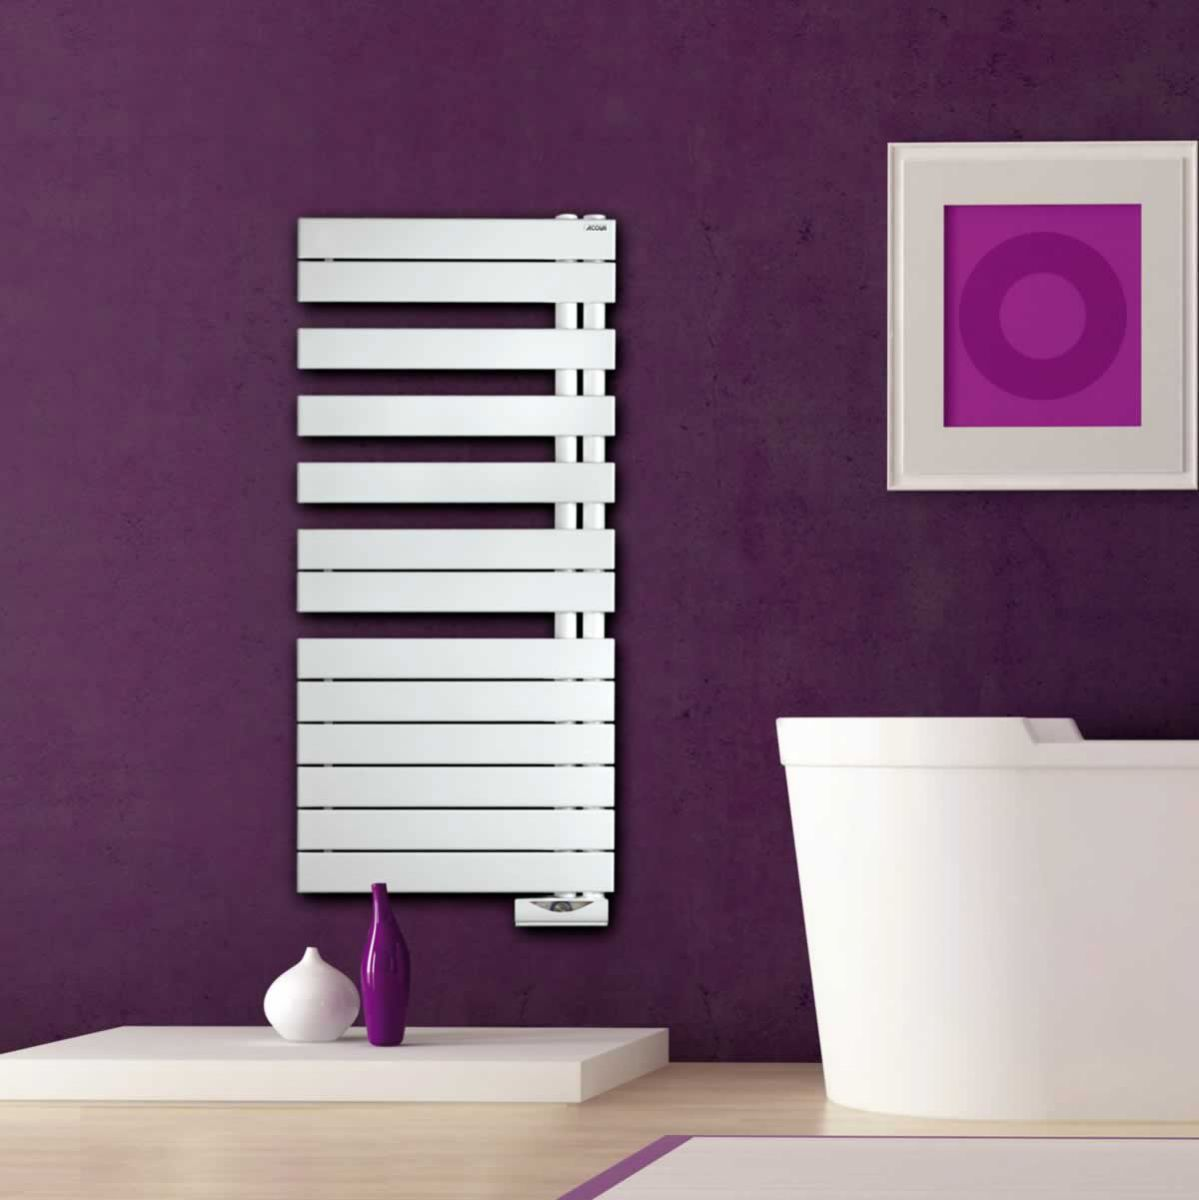 zehnder roda spa asym electric radiator uk bathrooms